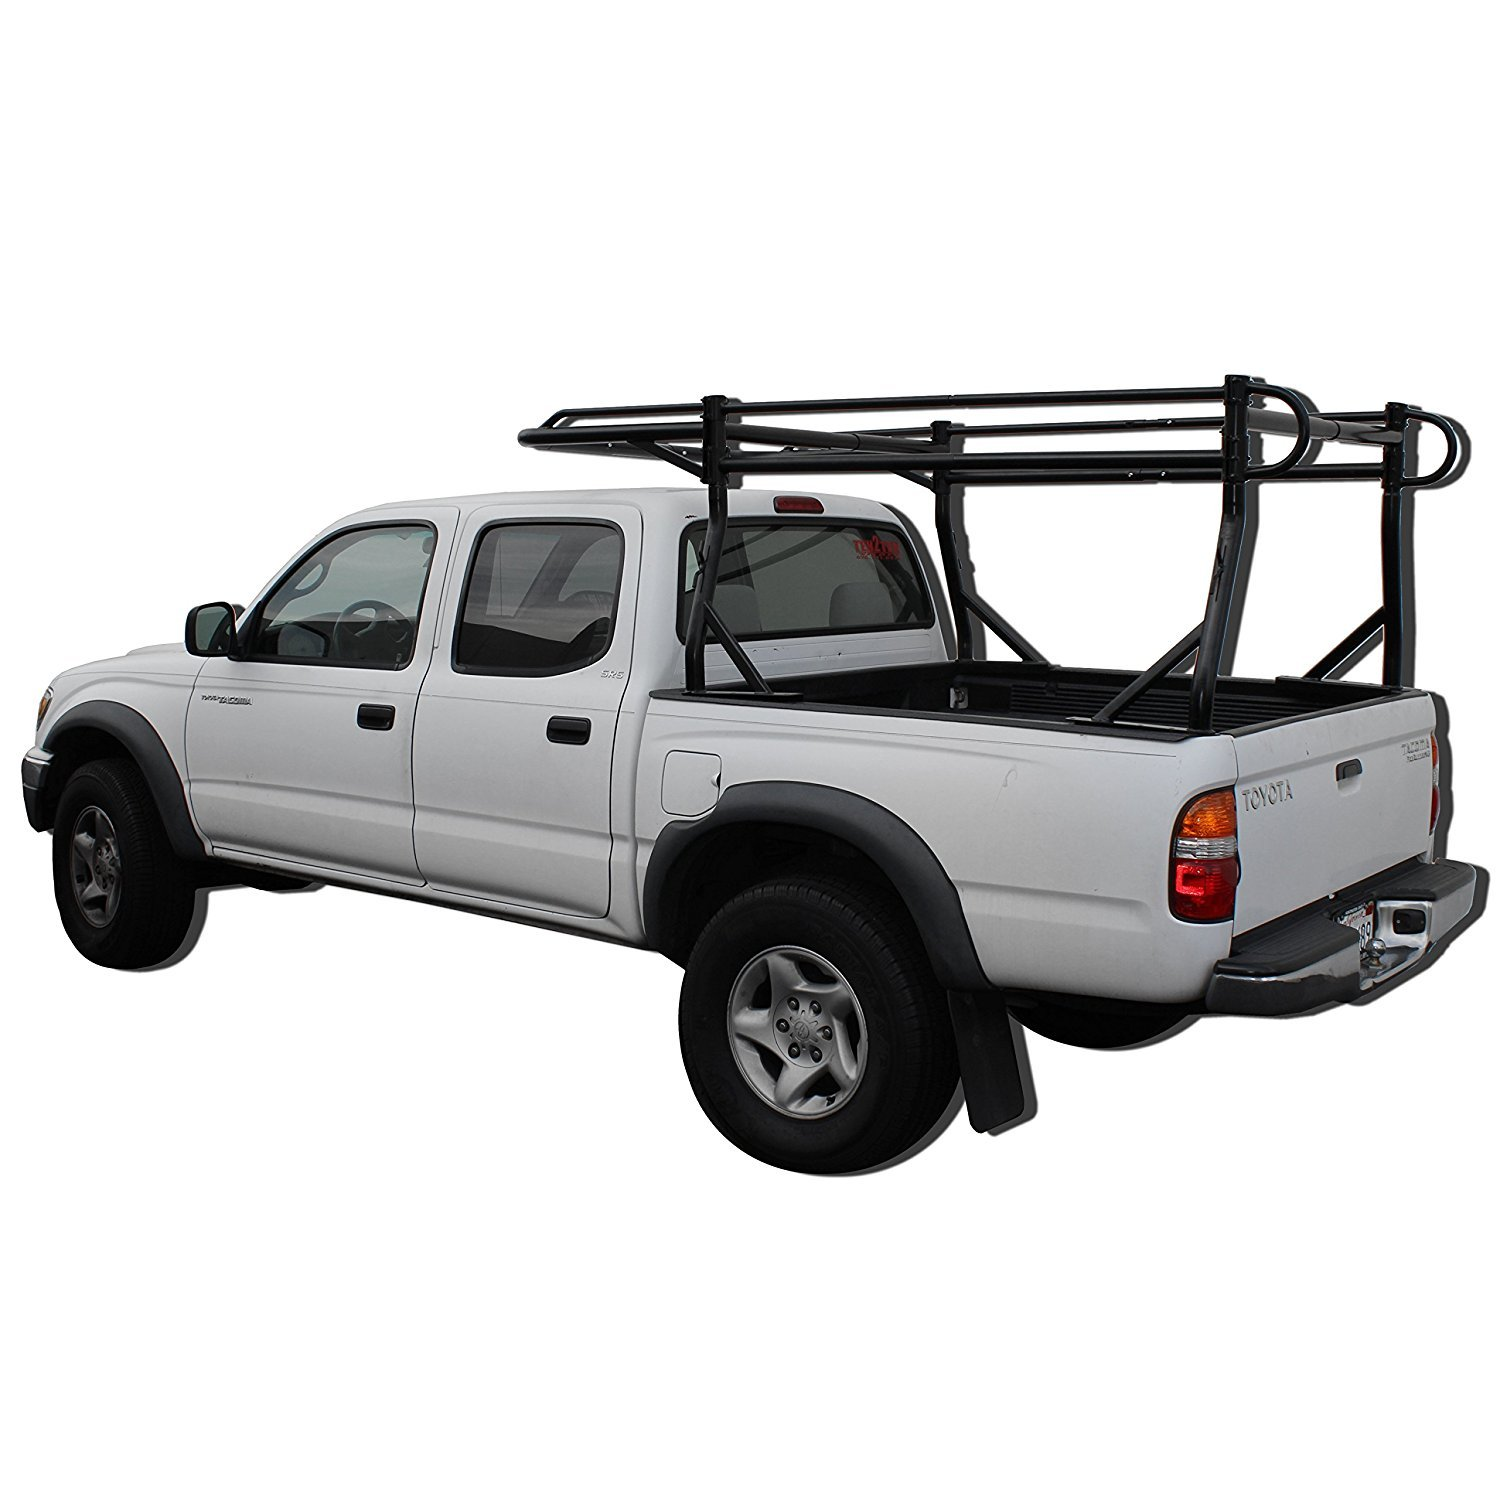 -Matte Black AA-Racks Model X38 Short Bed Truck Ladder Rack Side Bar with Short Over-cab Ext